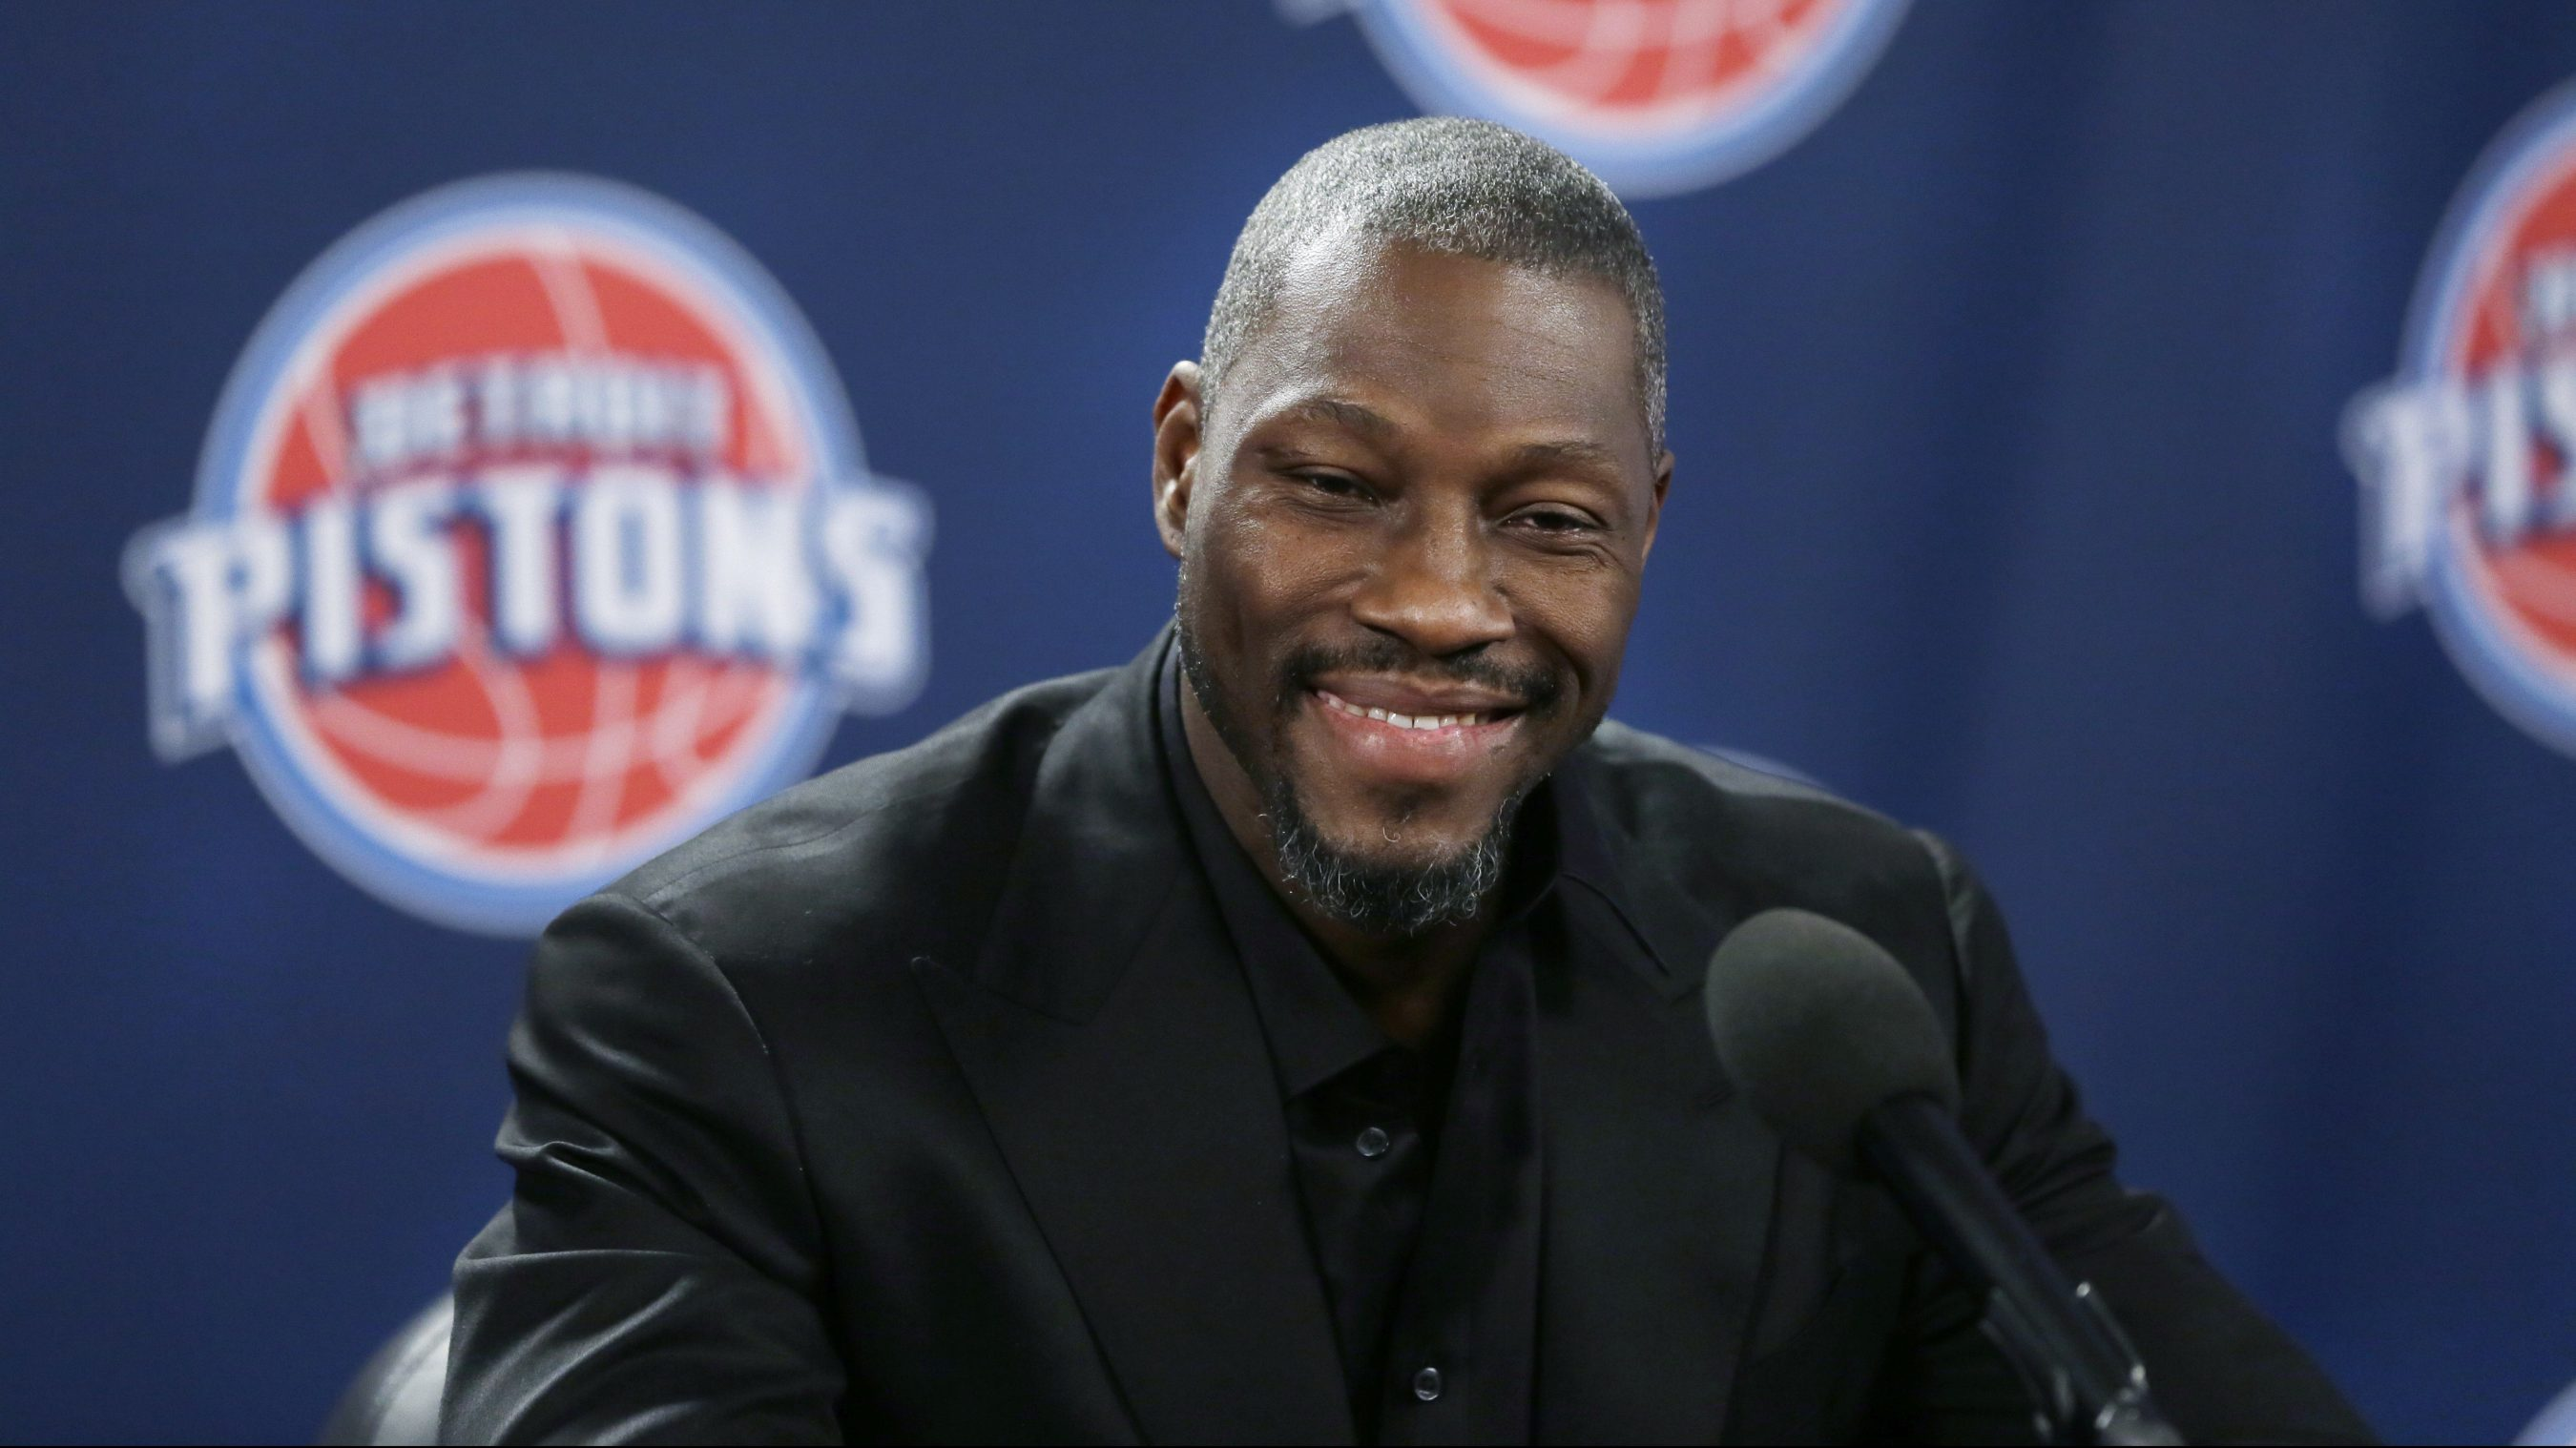 a4368ef56af207 Retirement wasn t easy for former Piston Ben Wallace